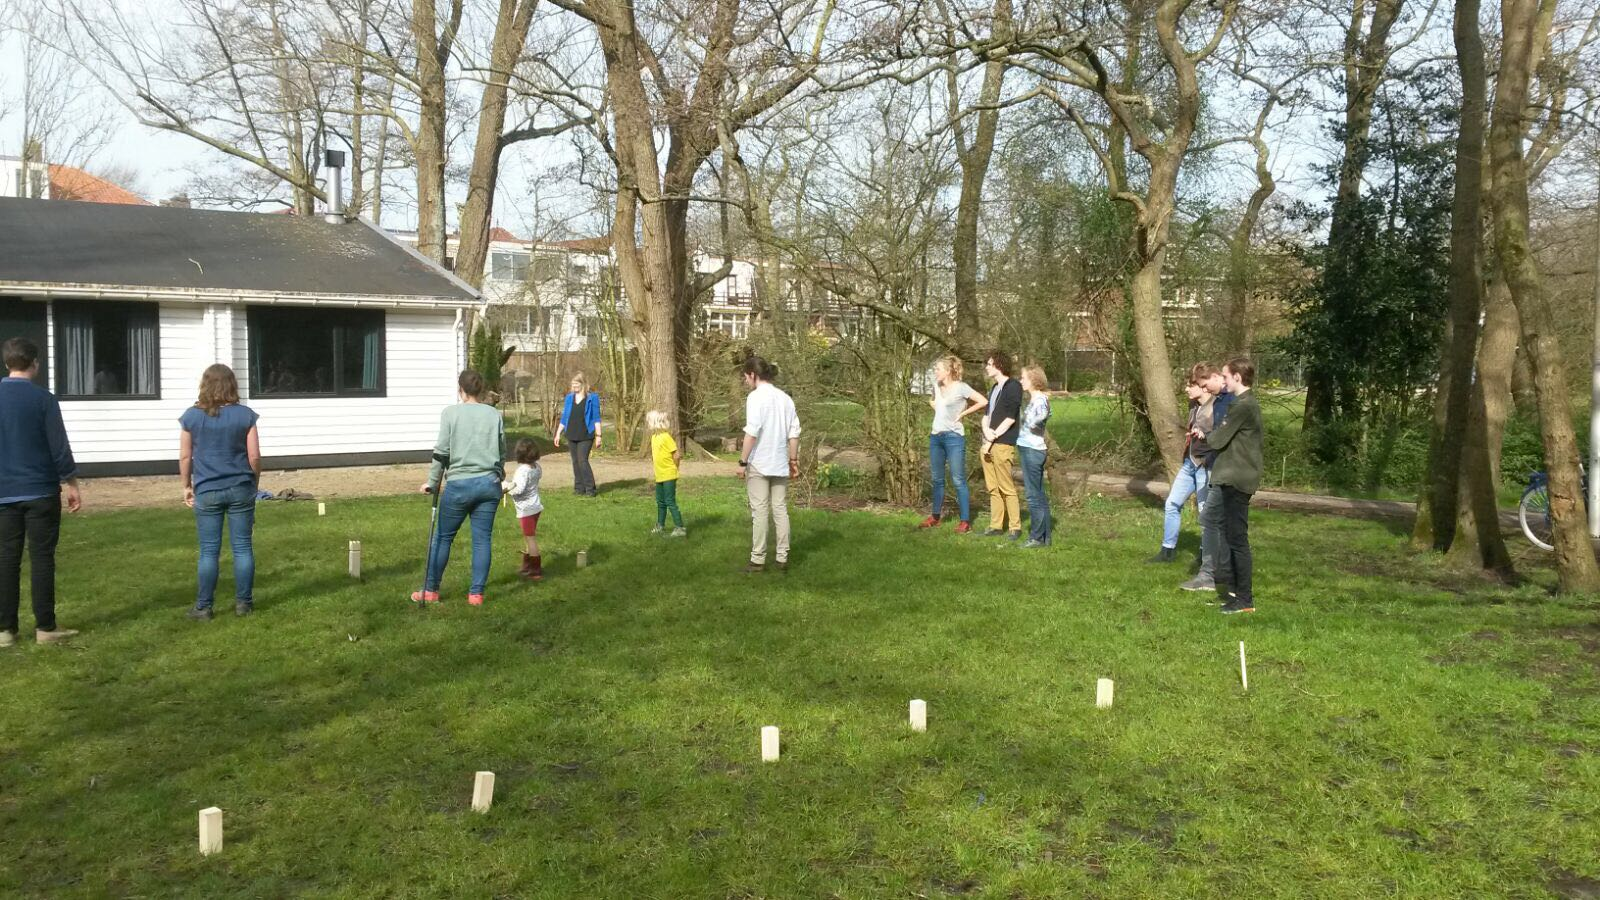 A game of Kubb on the front lawn